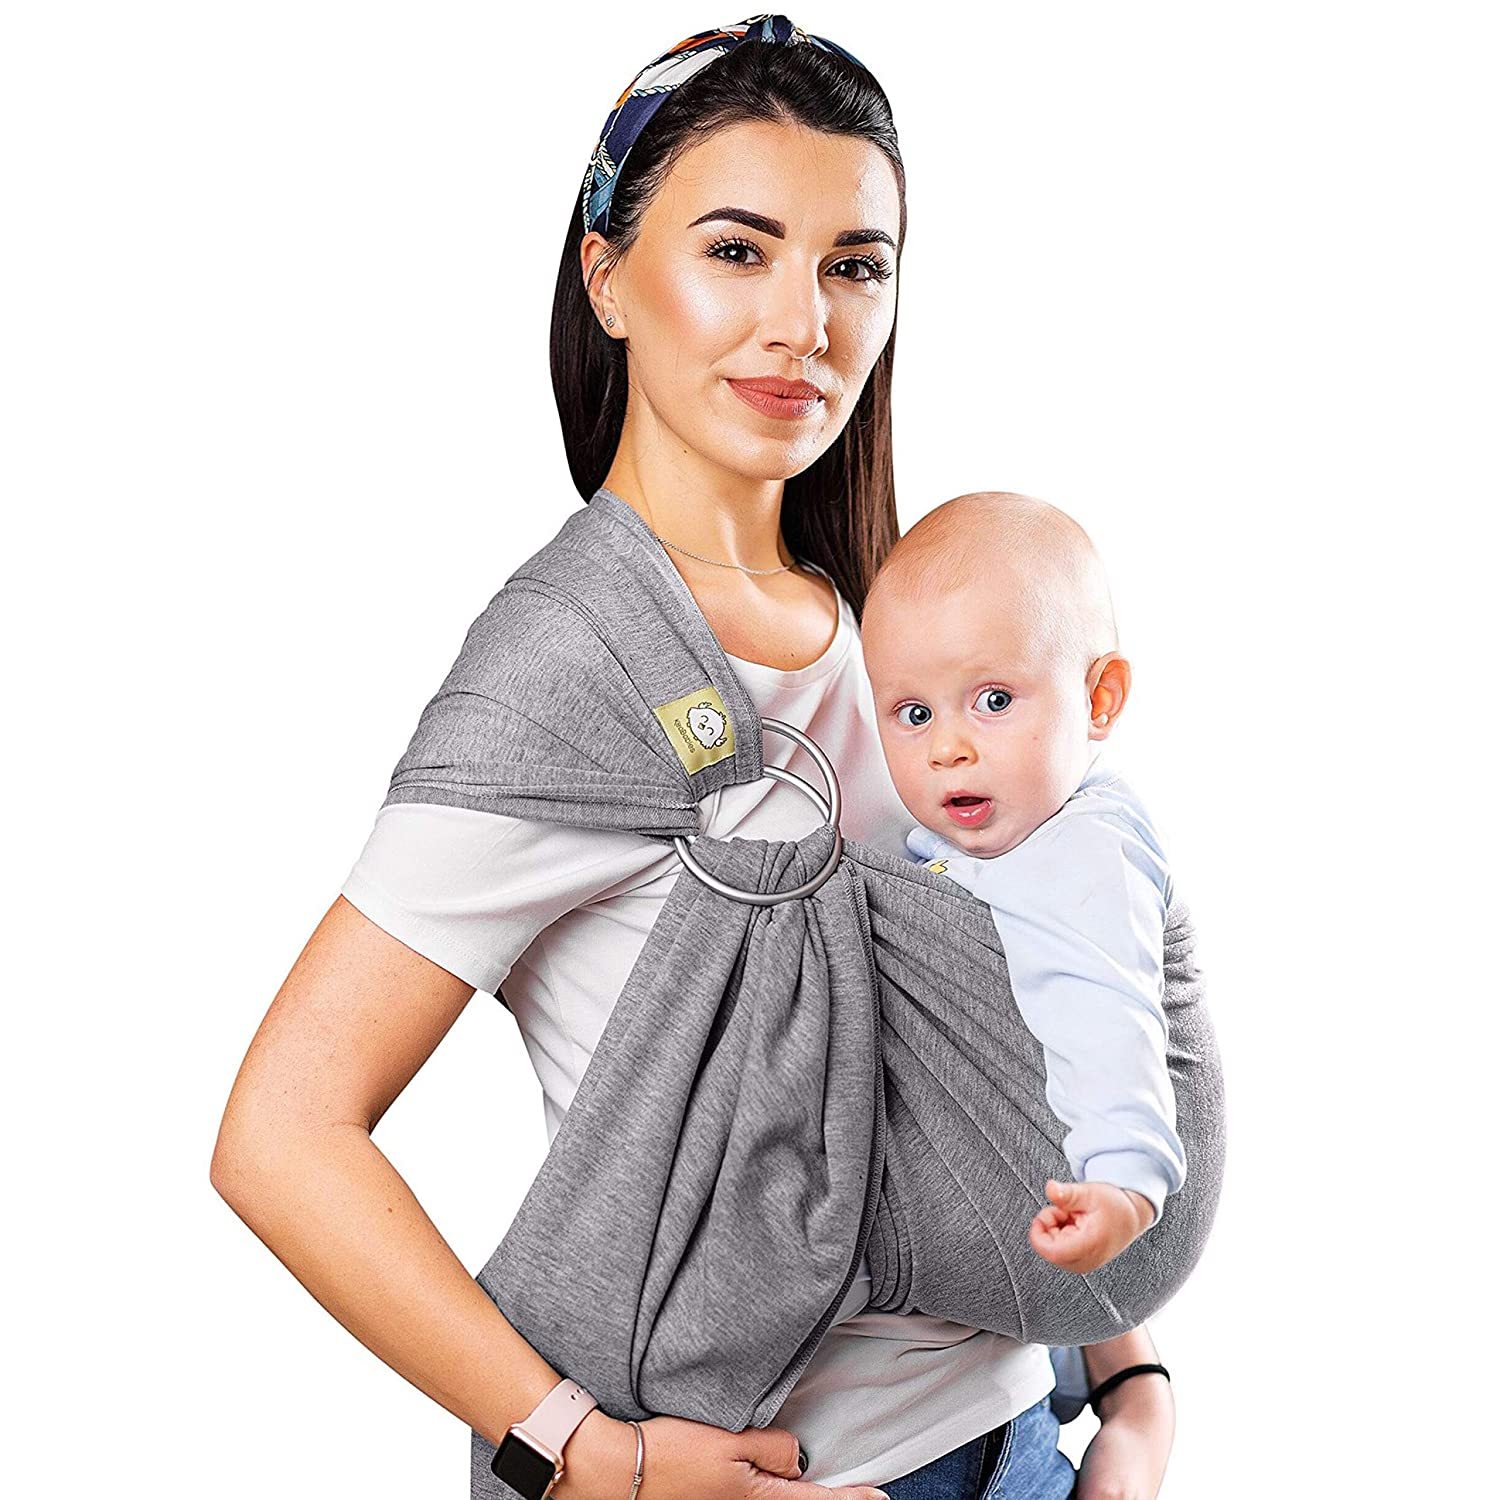 Buy Baby Wrap Ring Sling Ergo Carrier - All-in-1 Stretchy Baby Wraps with  Detachable Rings- Baby Sling - Infant Carrier - Babys Wrap - Hands Free  Babies Carrier Wraps - Baby Shower